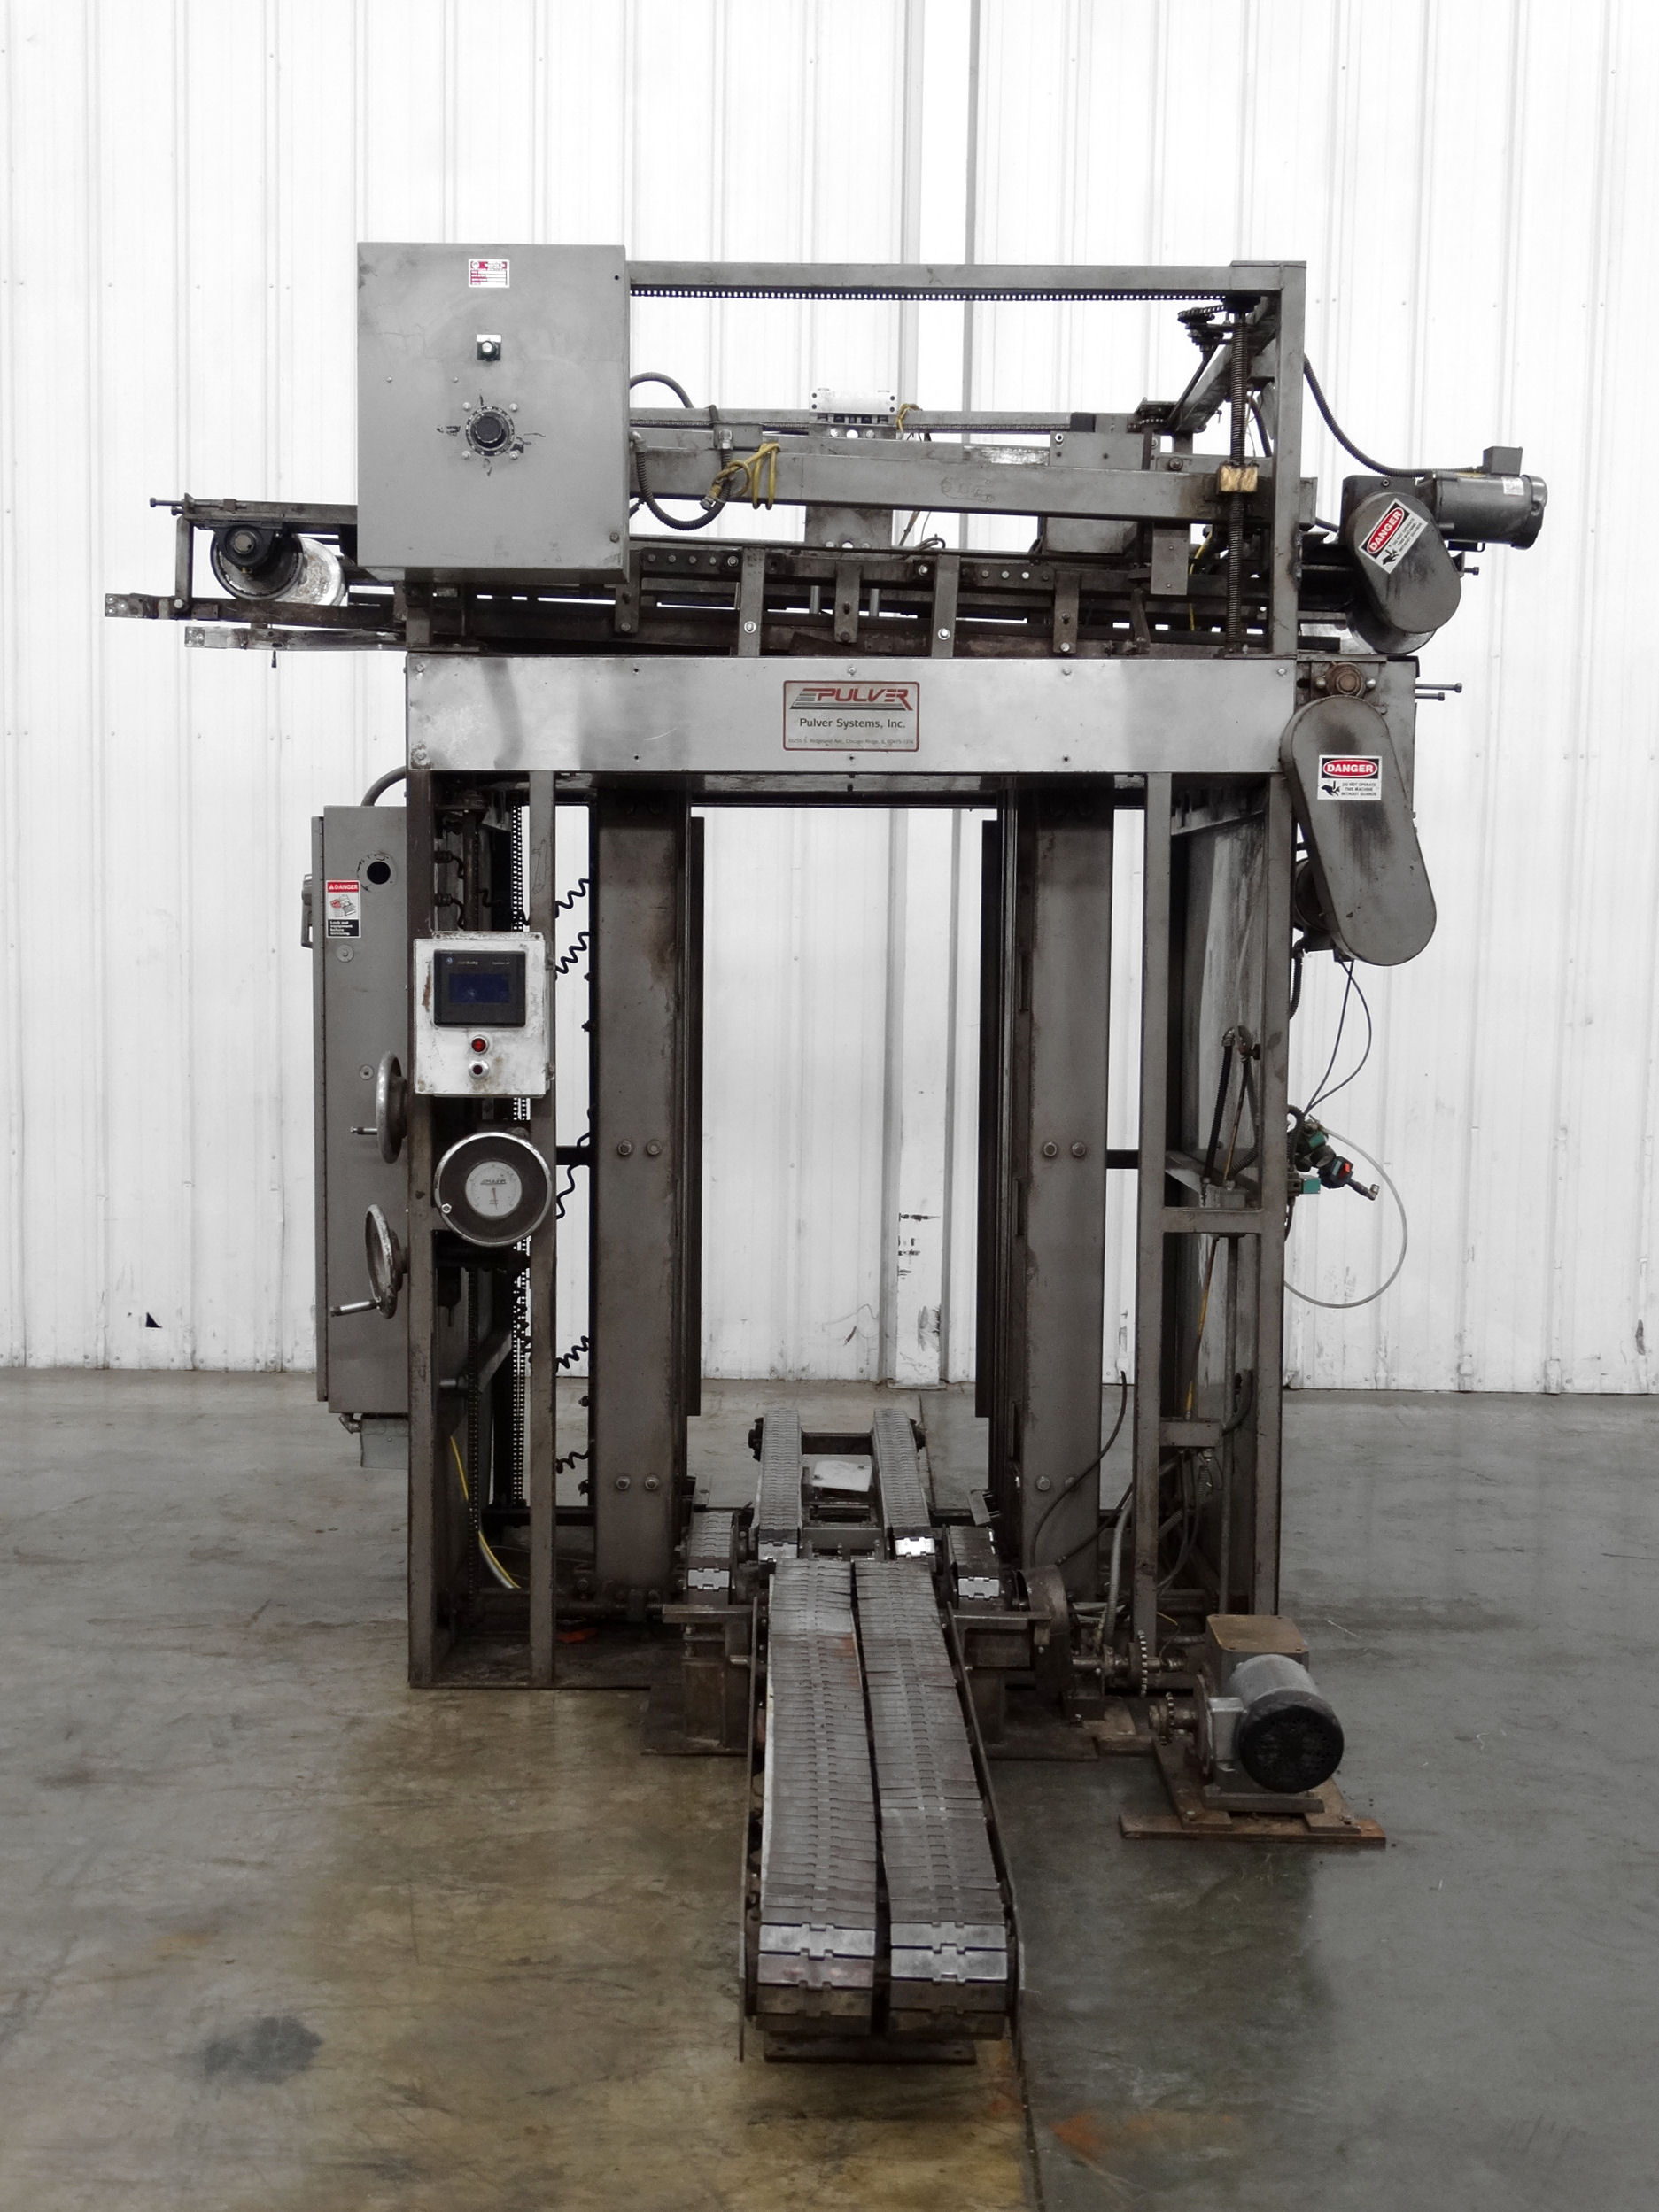 Pulver Stainless Steel Pan Stacker B4409 - Image 2 of 11